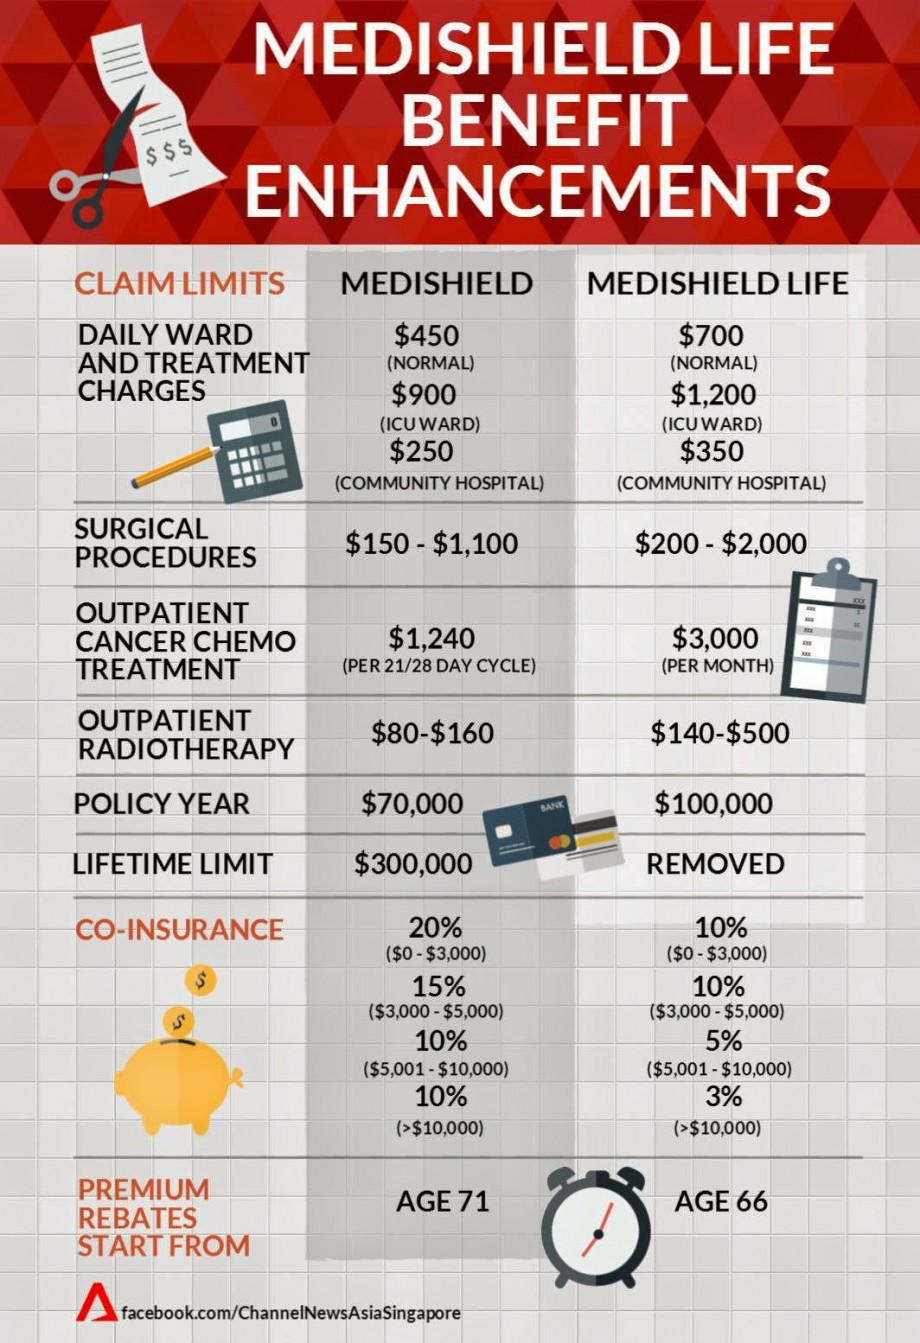 Medishield Life Benefit Enhancements - AspirantSG